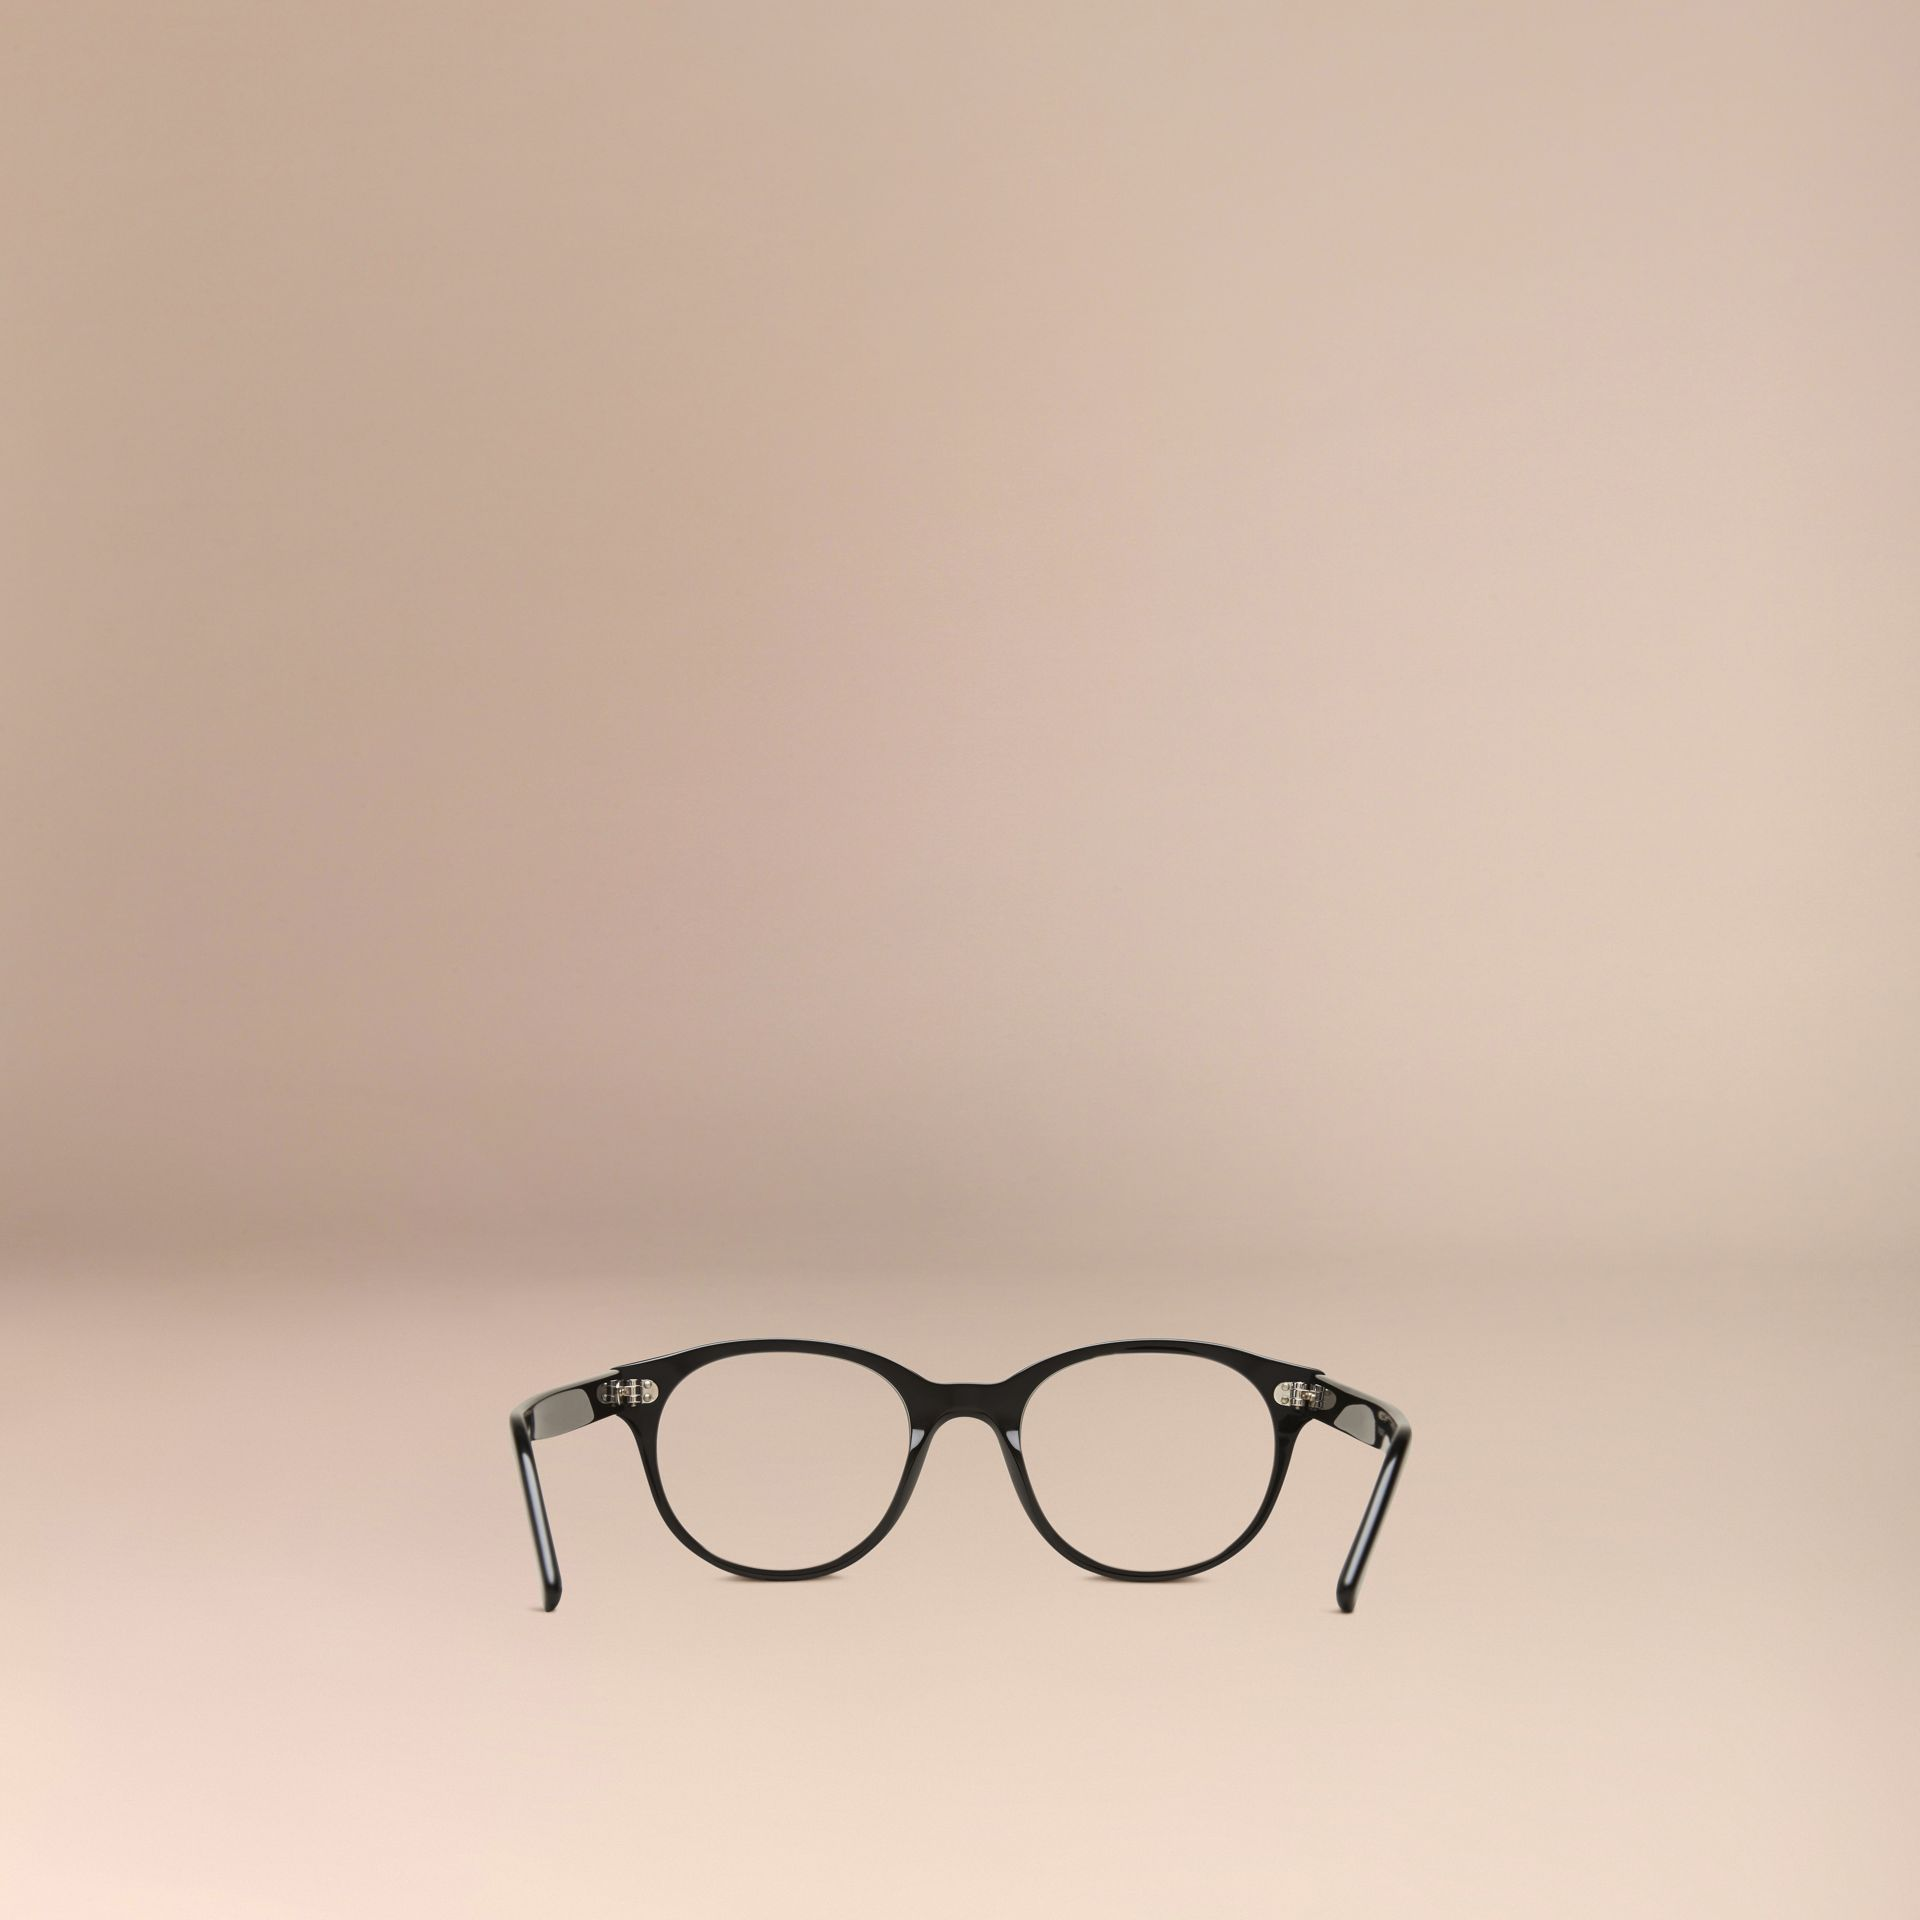 Round Optical Frames in Black - gallery image 3